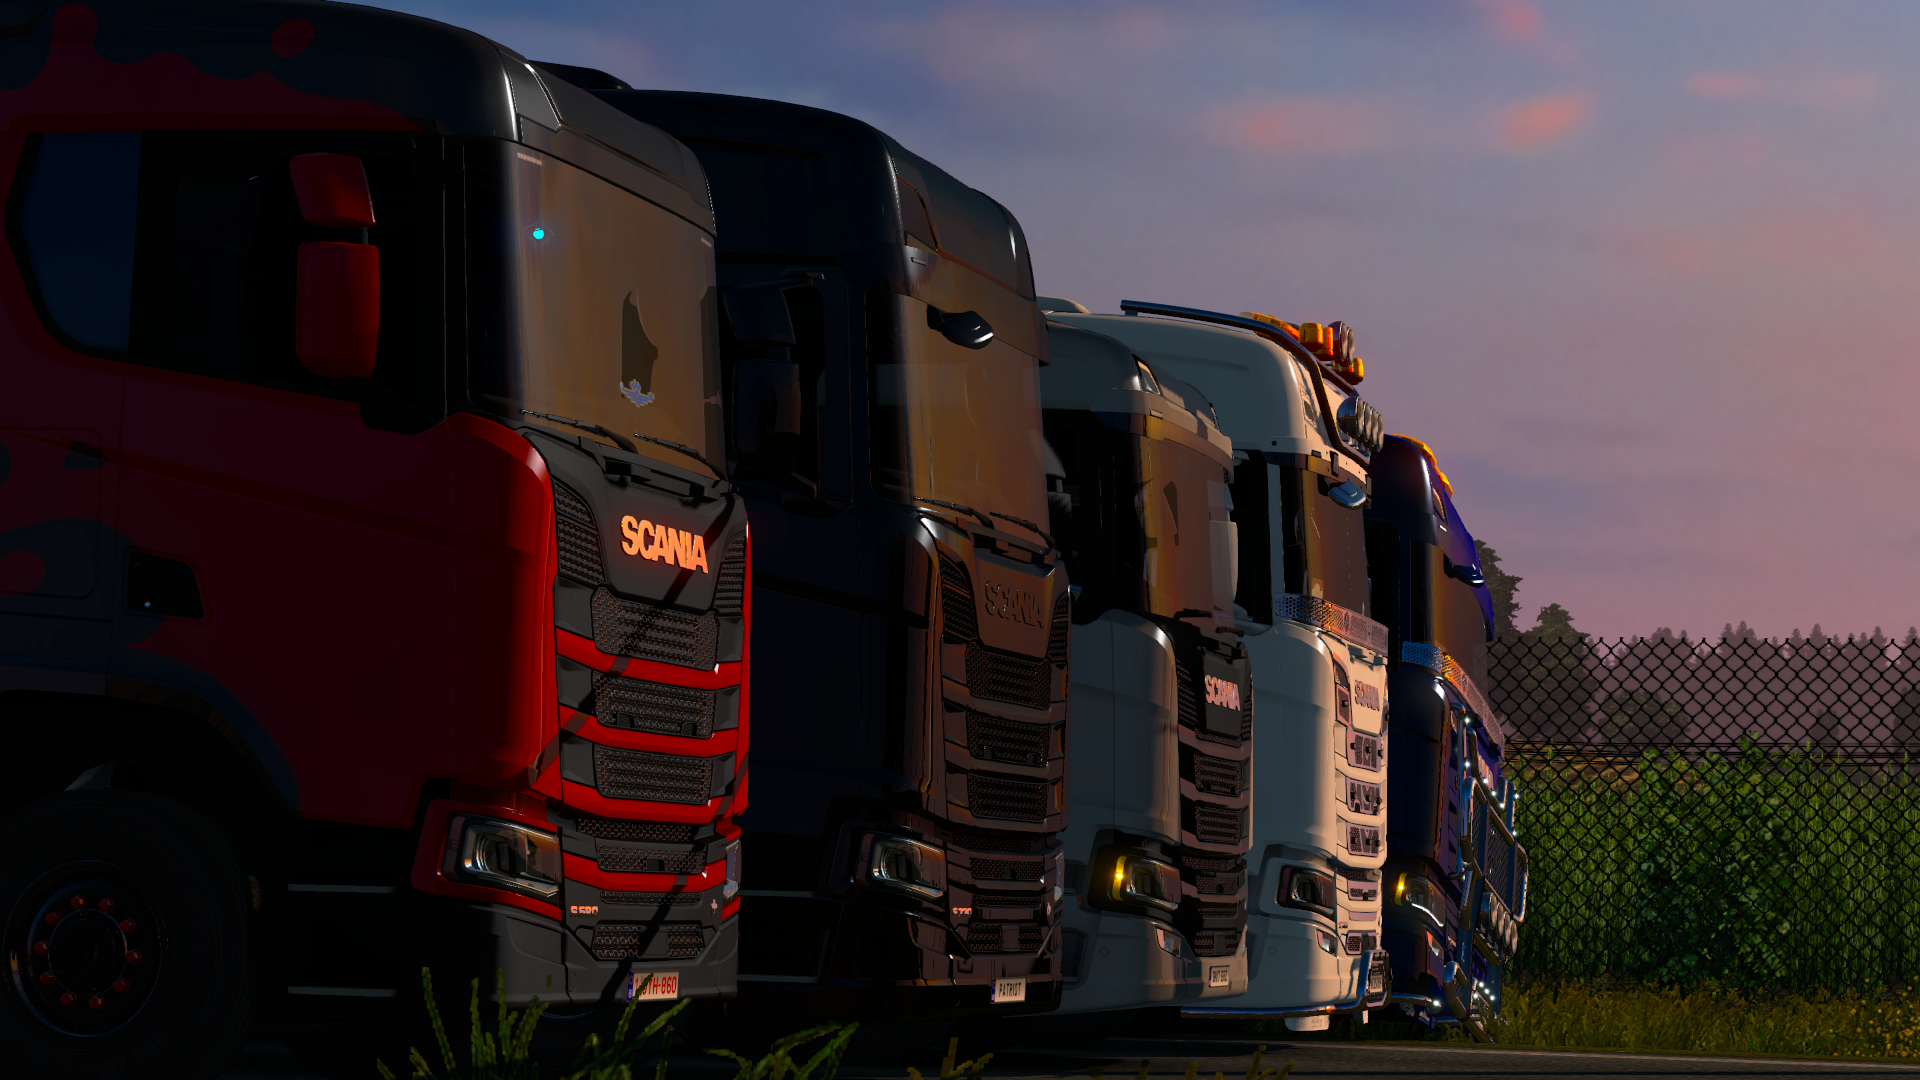 ets2_20190413_033343_00.png